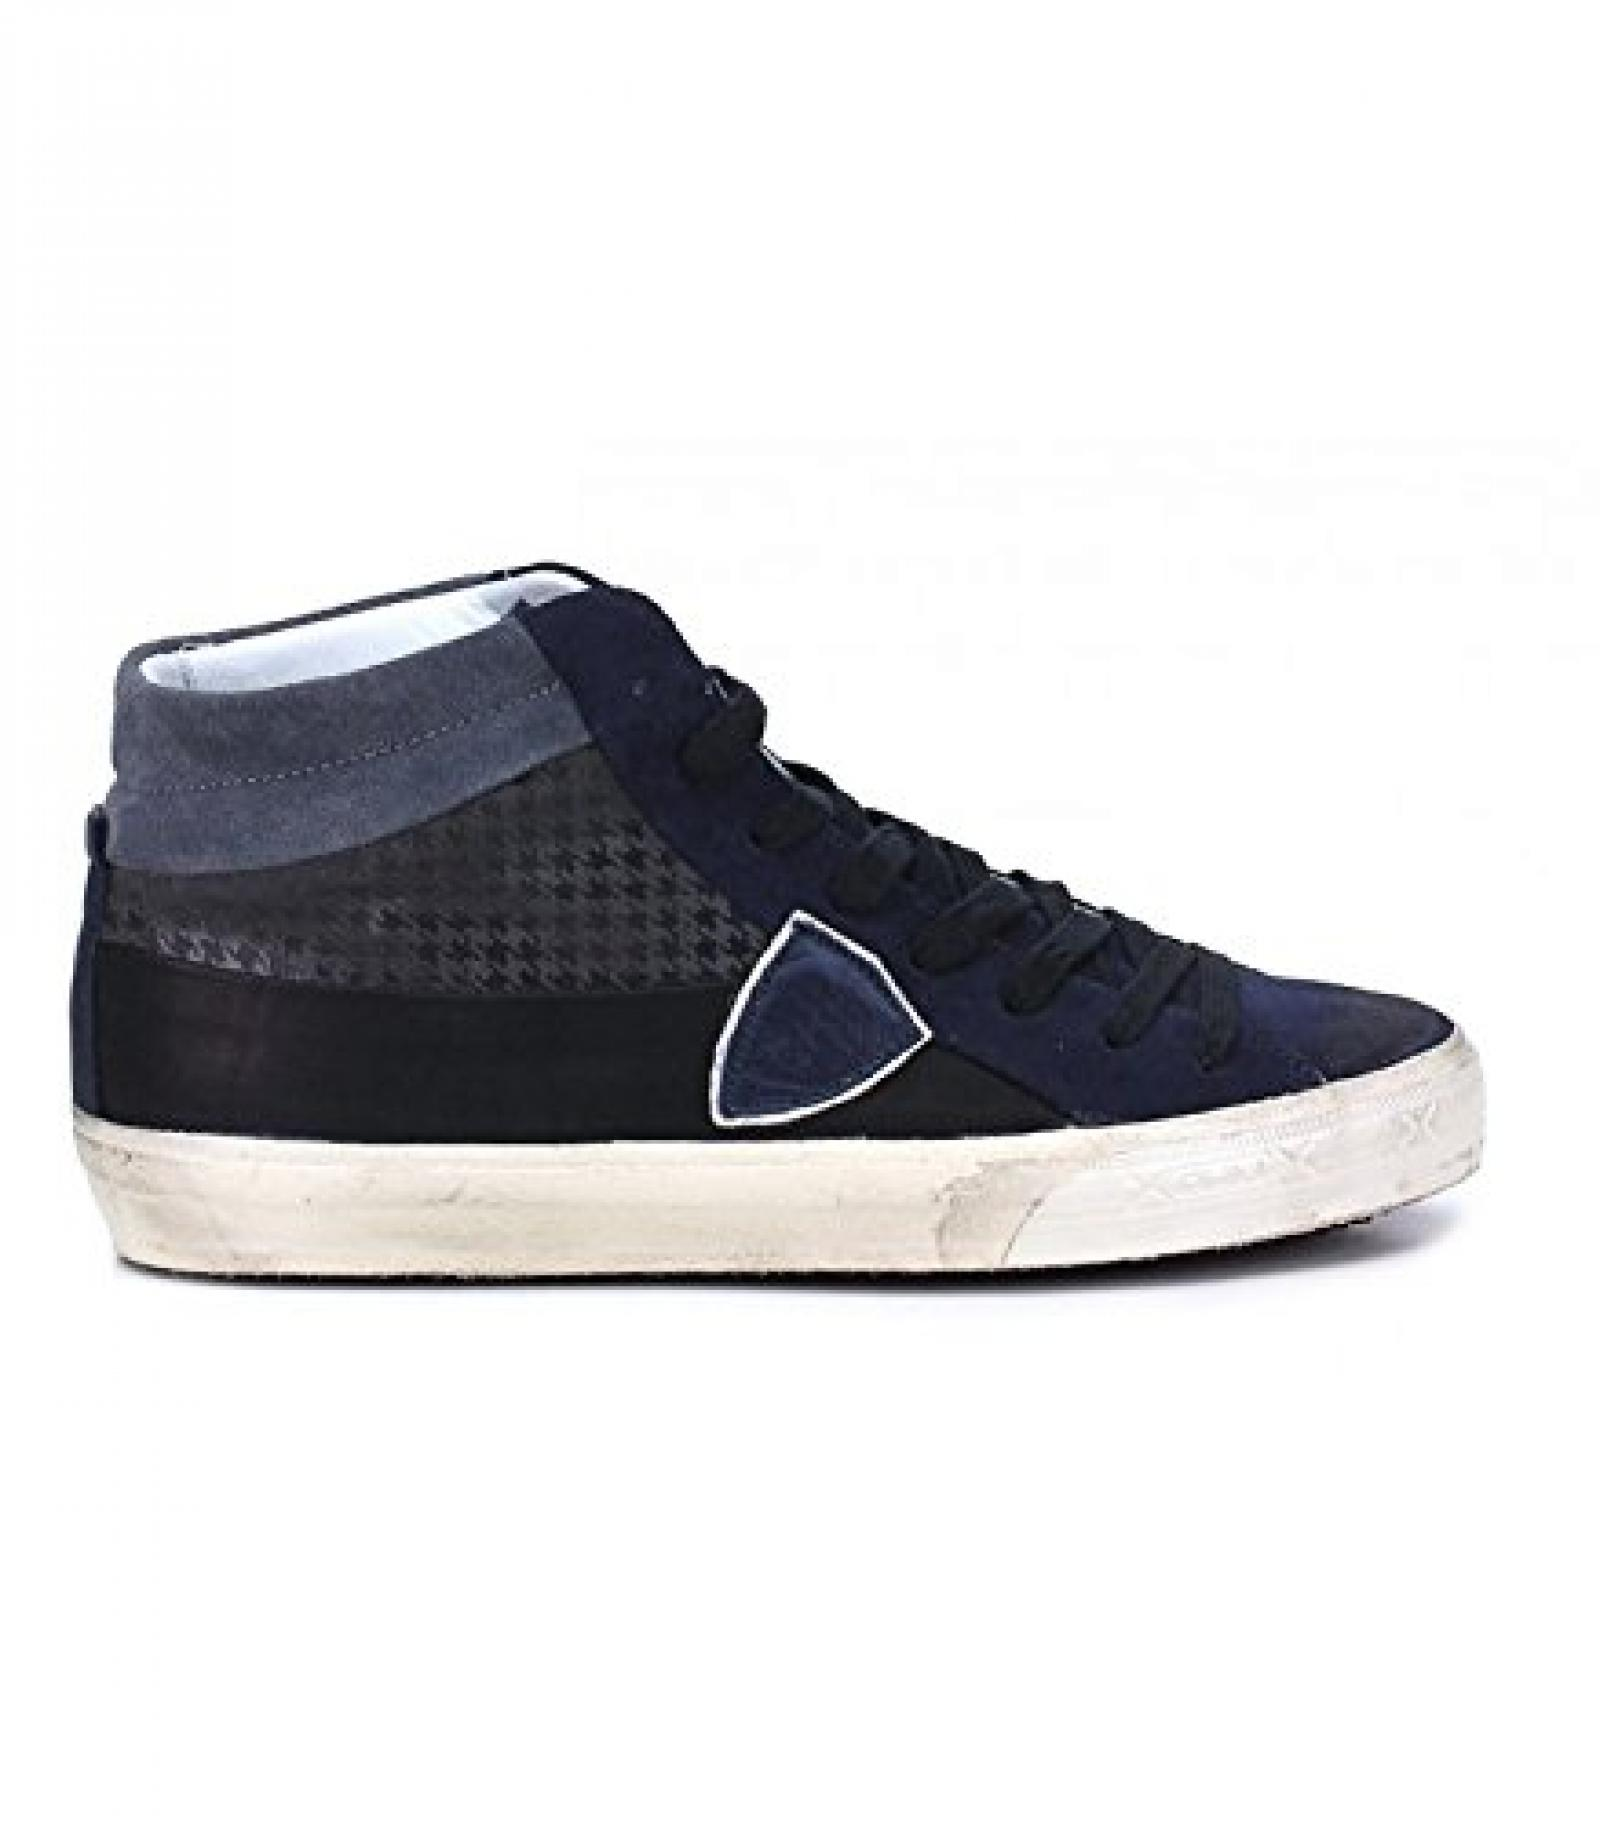 PHILIPPE MODEL MDHU CS06 NAVY LEDER HI TOP SNEAKERS